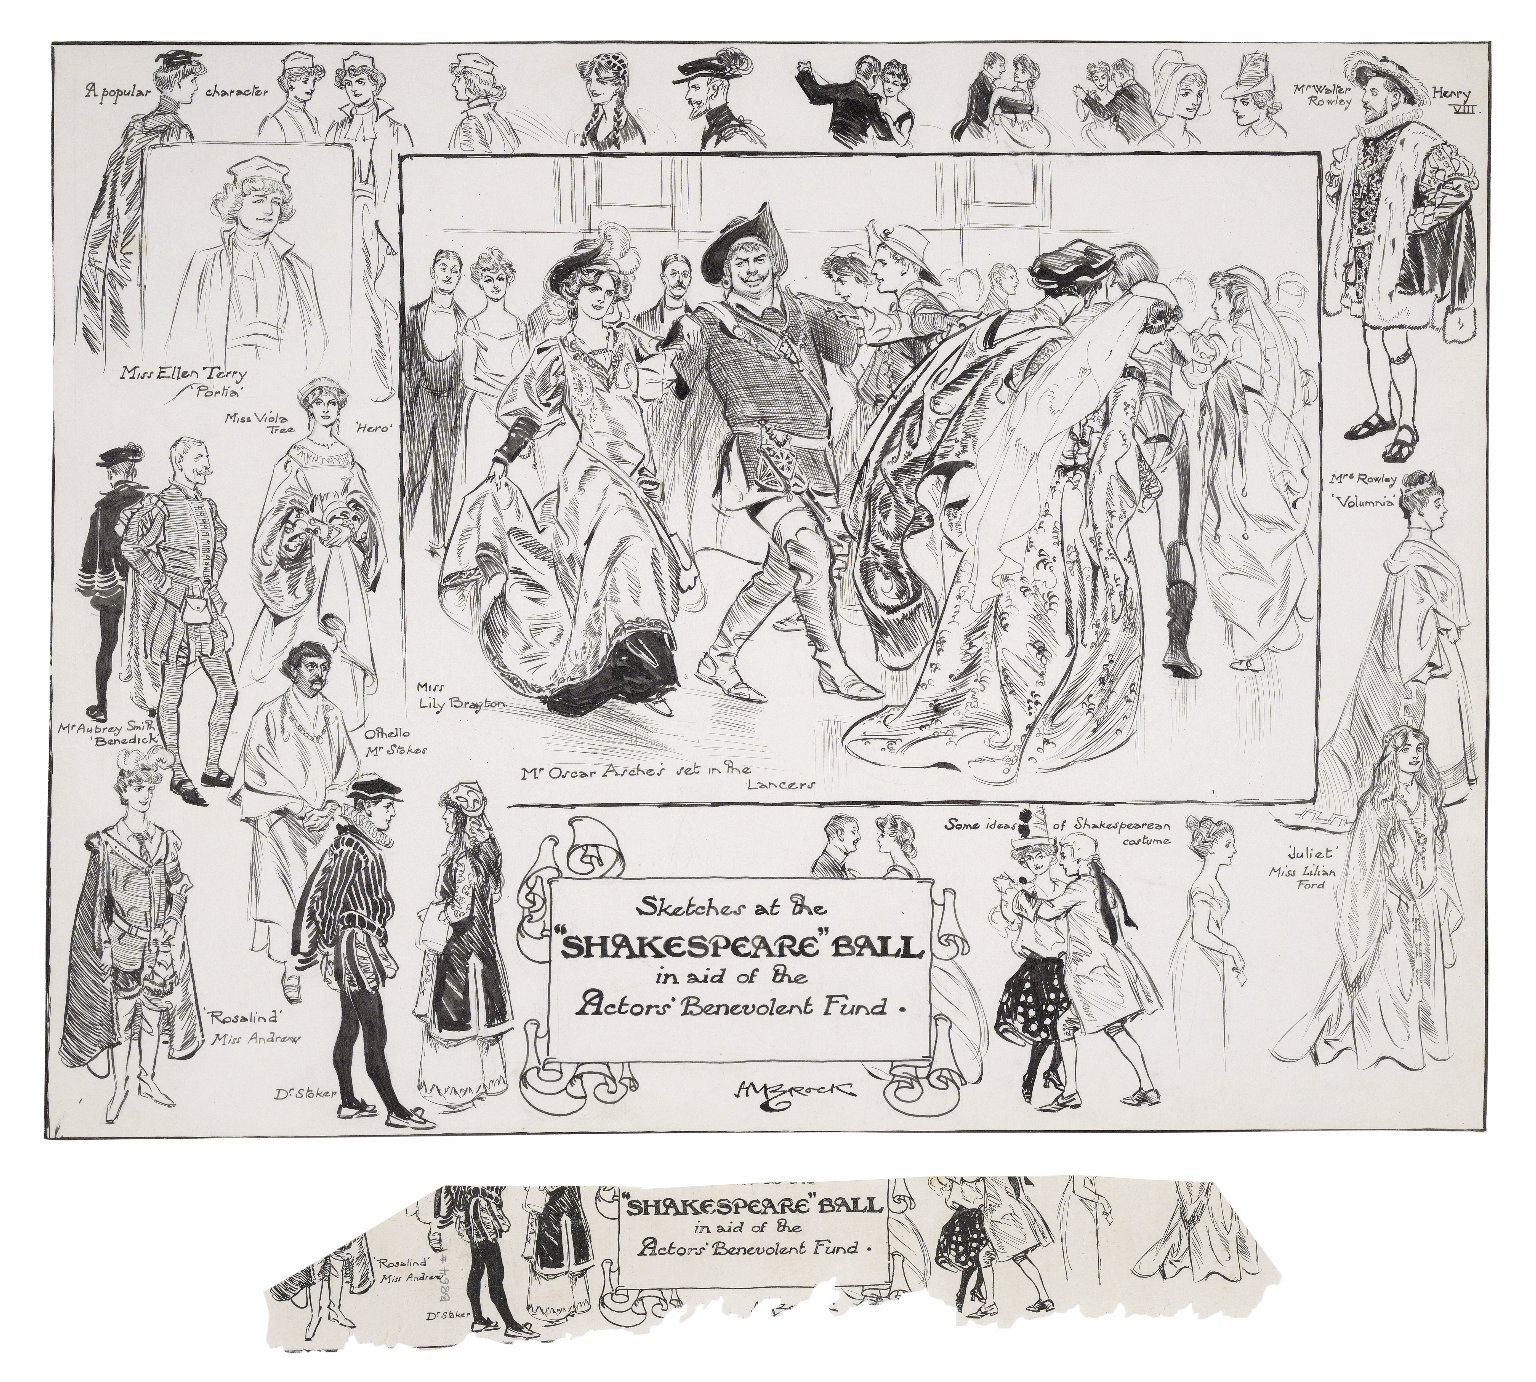 Sketches at the Shakespeare Ball in aid of the Actor's Benevolent Fund [May 13, 1905] [graphic] / H.M. Brock.